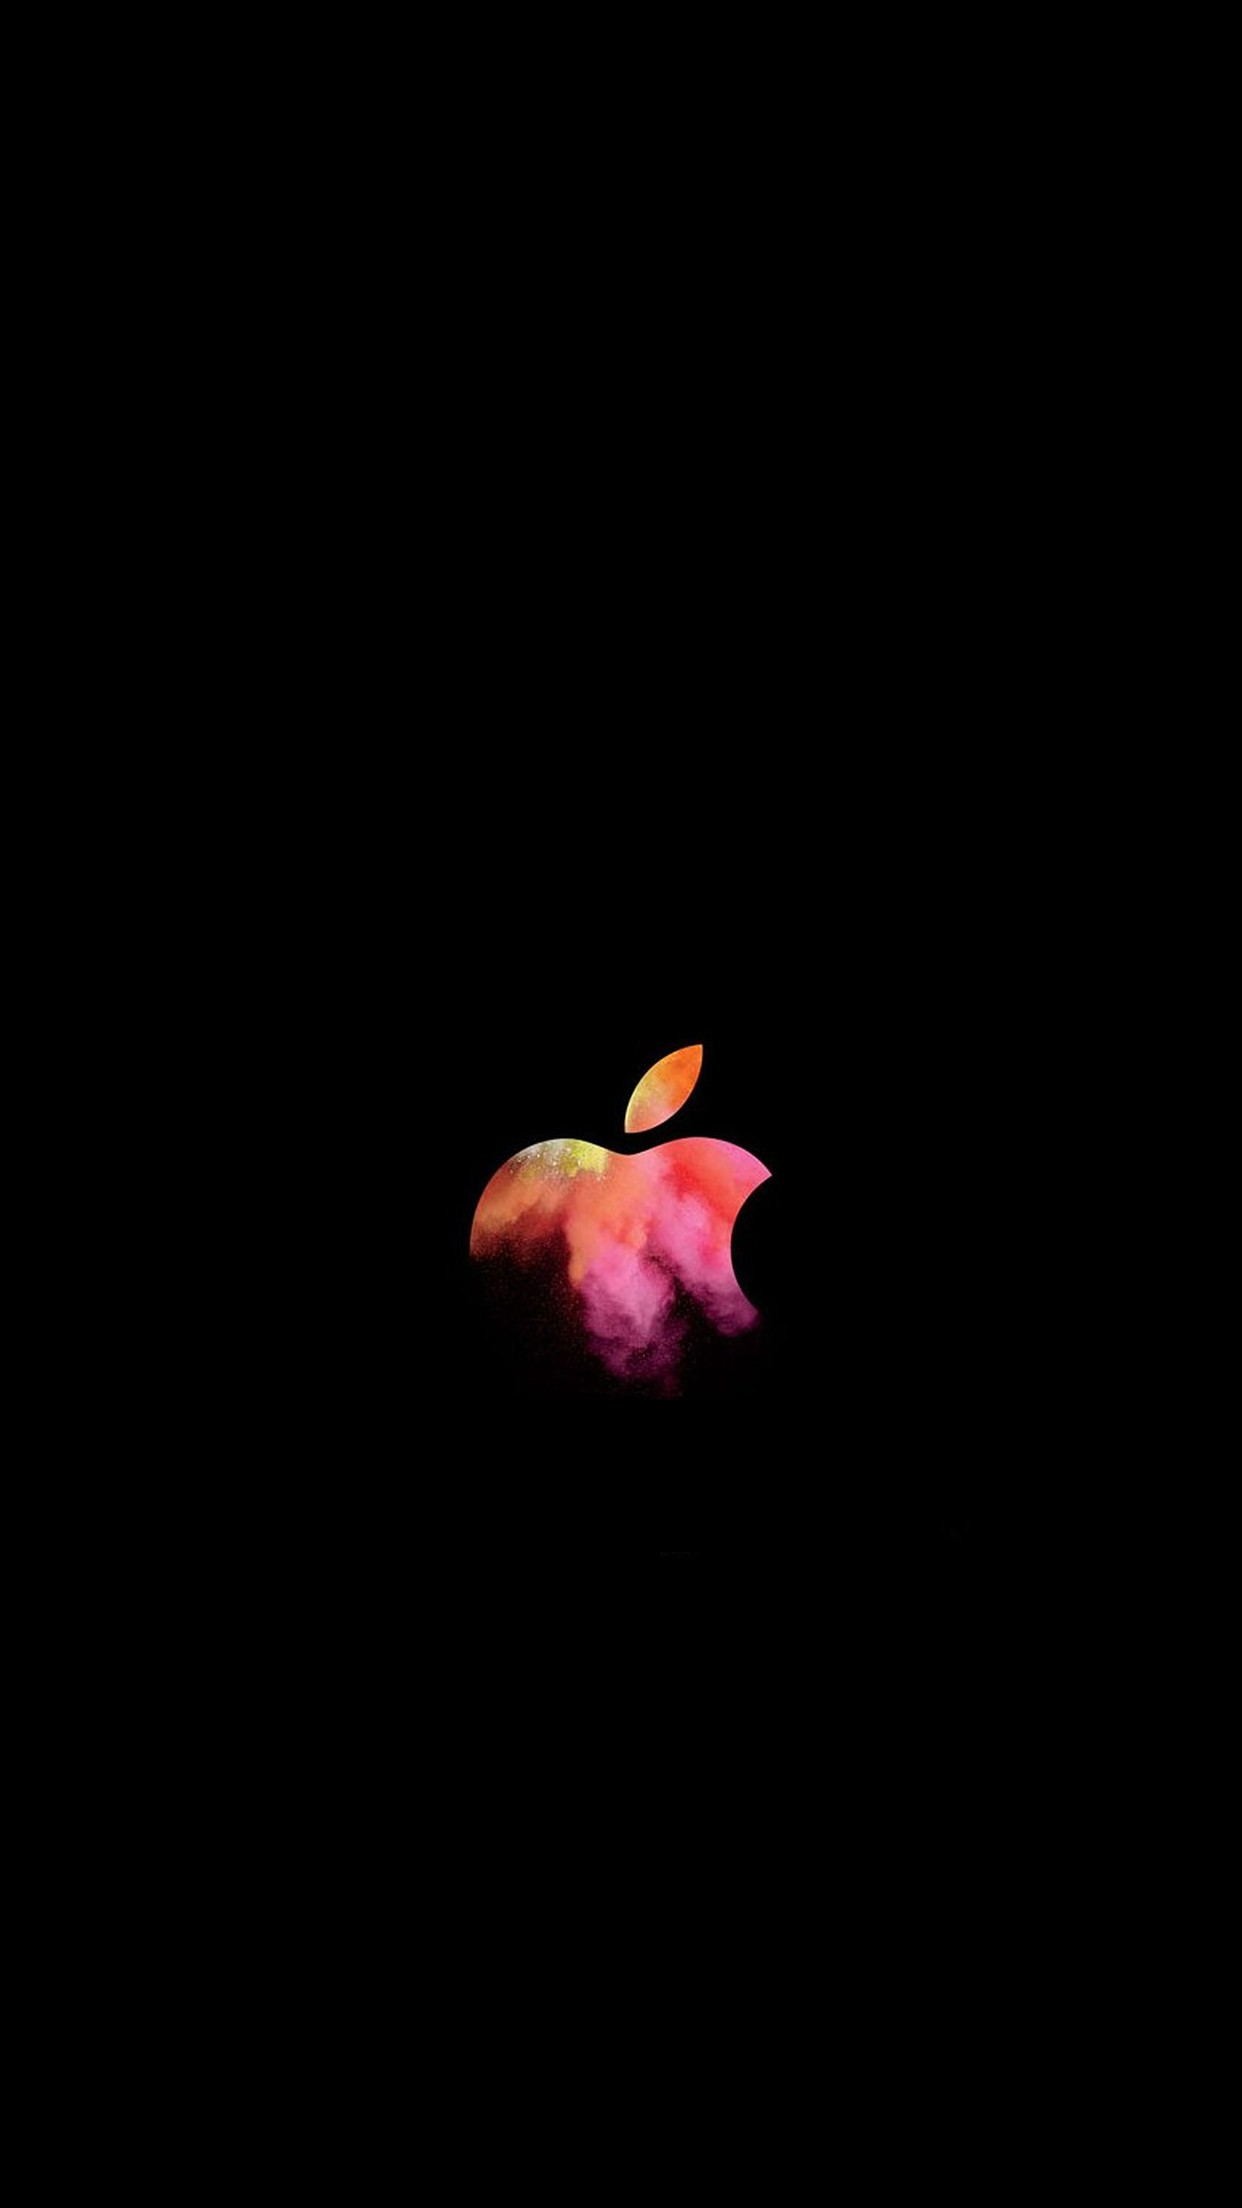 Oled Black Wallpaper Iphone X 36 Apple Wallpapers 183 ① Download Free Cool Hd Backgrounds